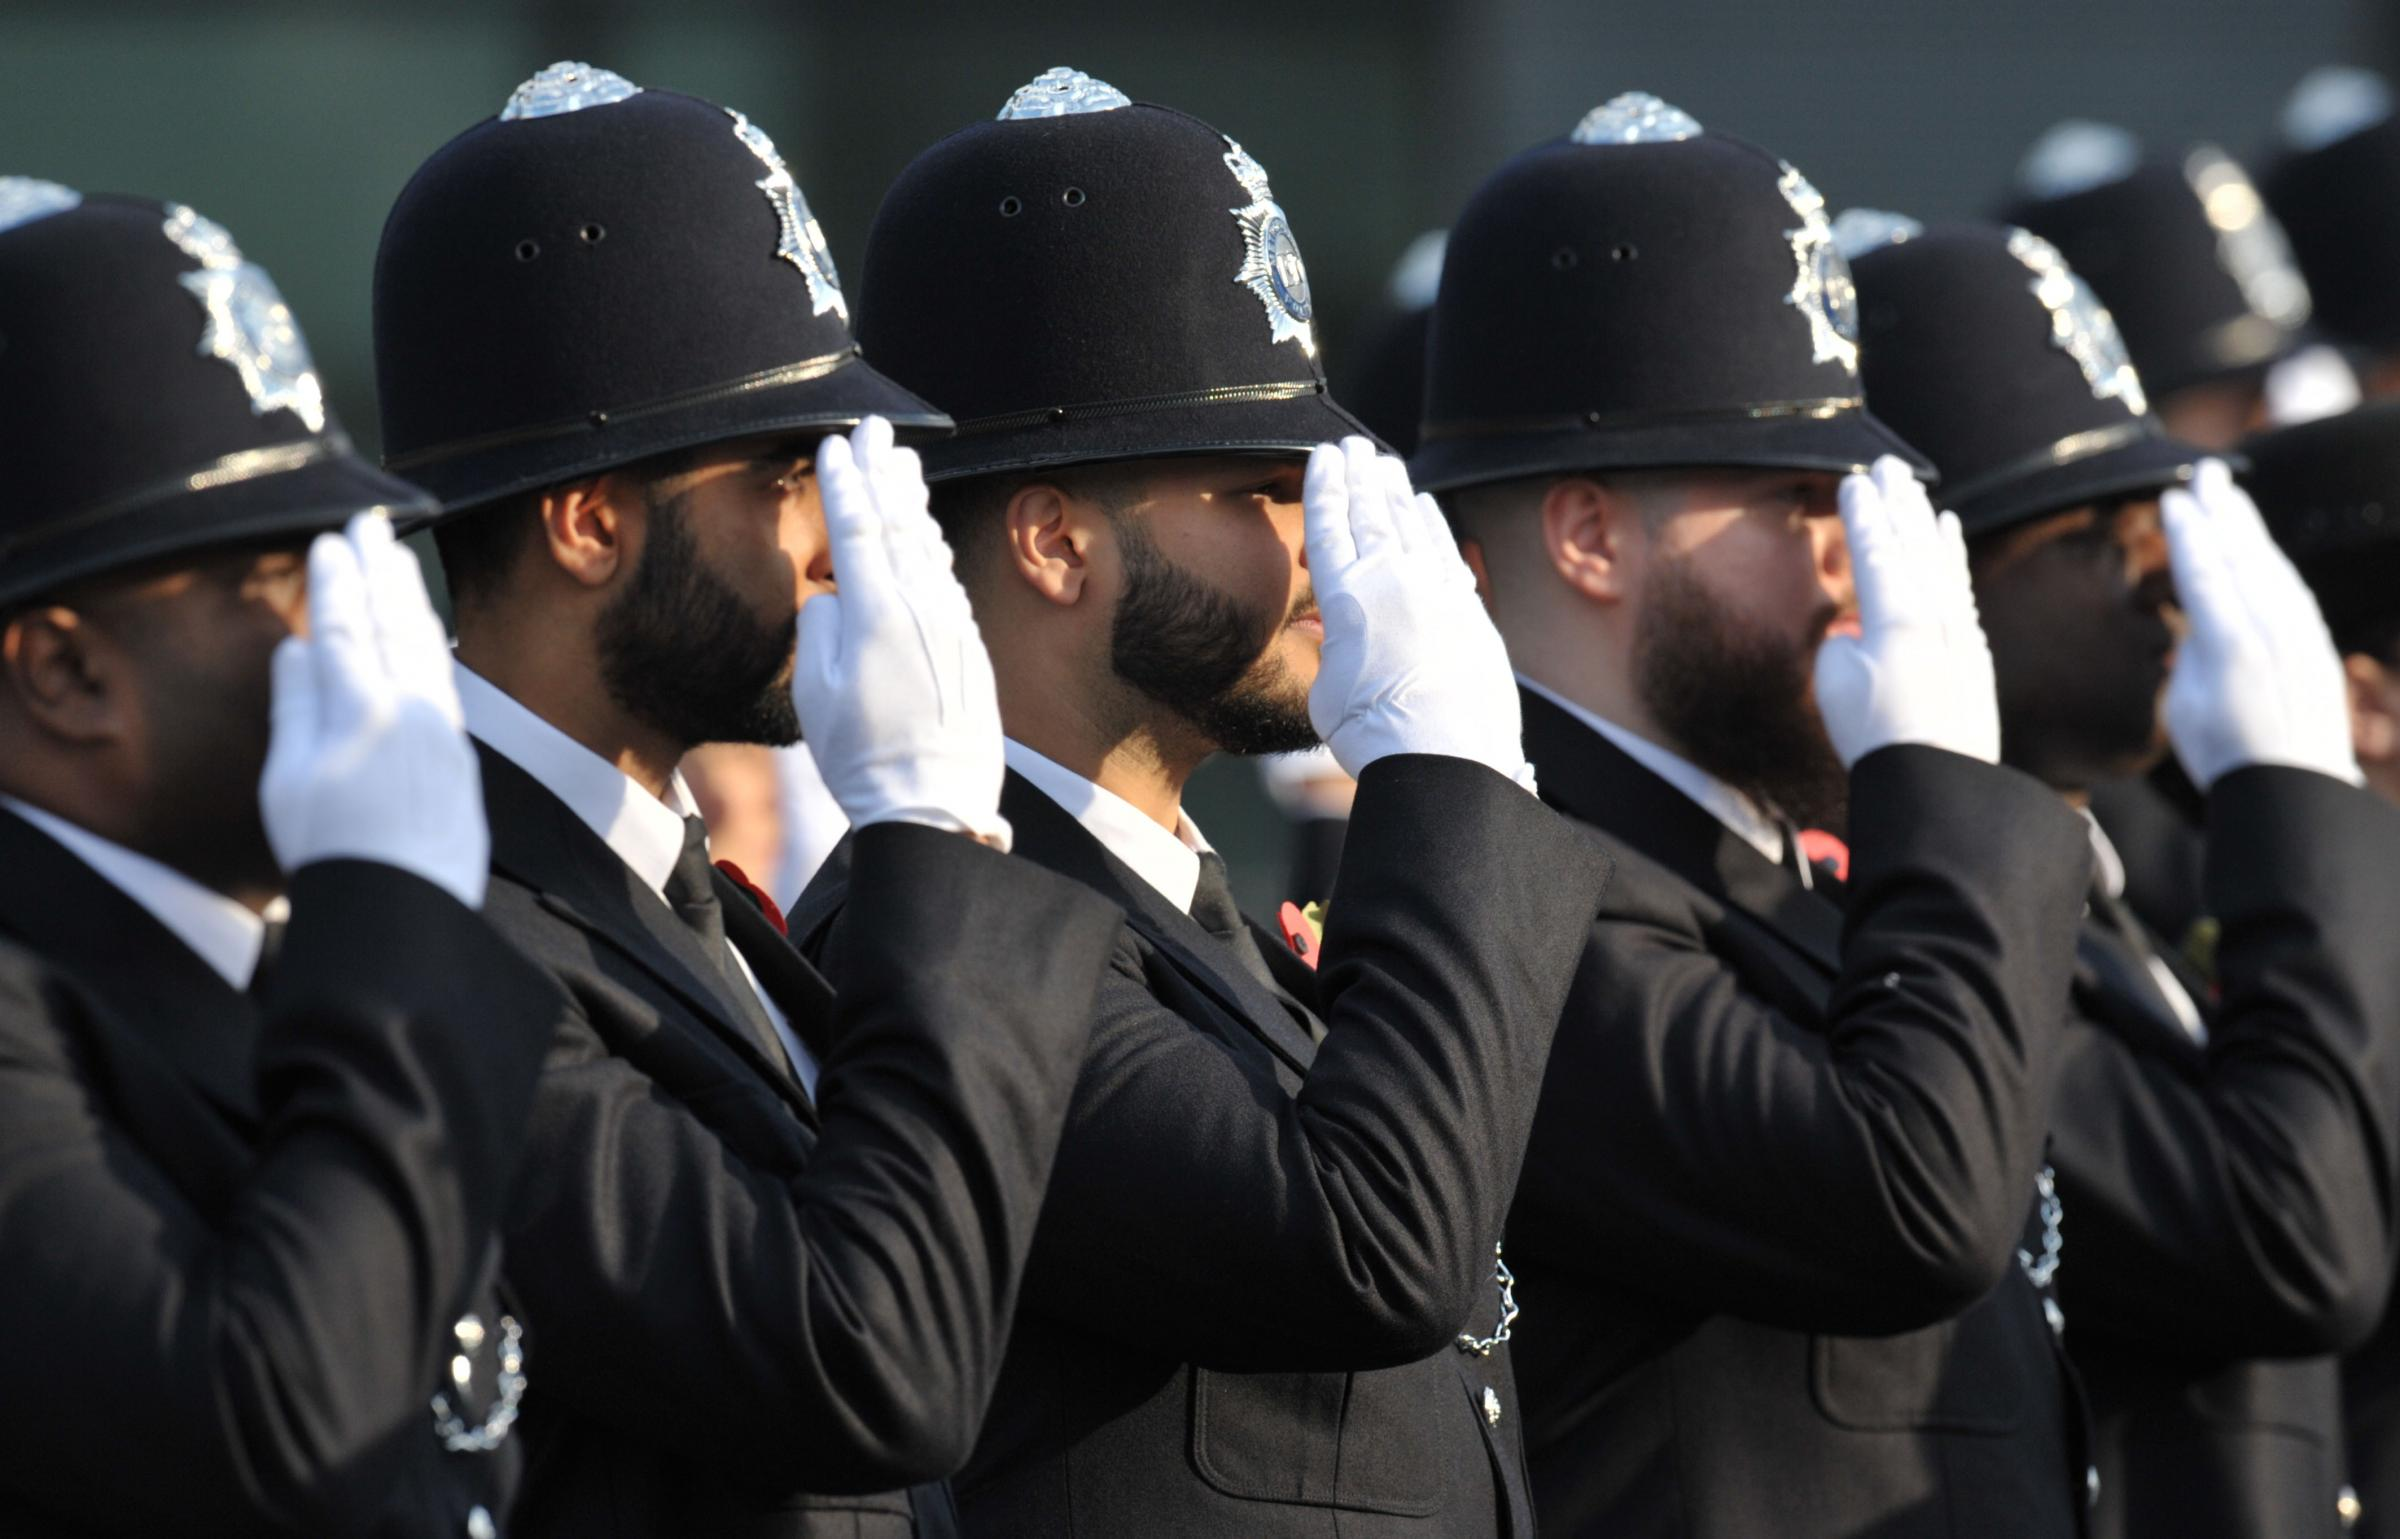 Police recruits saluting during a passing out parade for new officers.